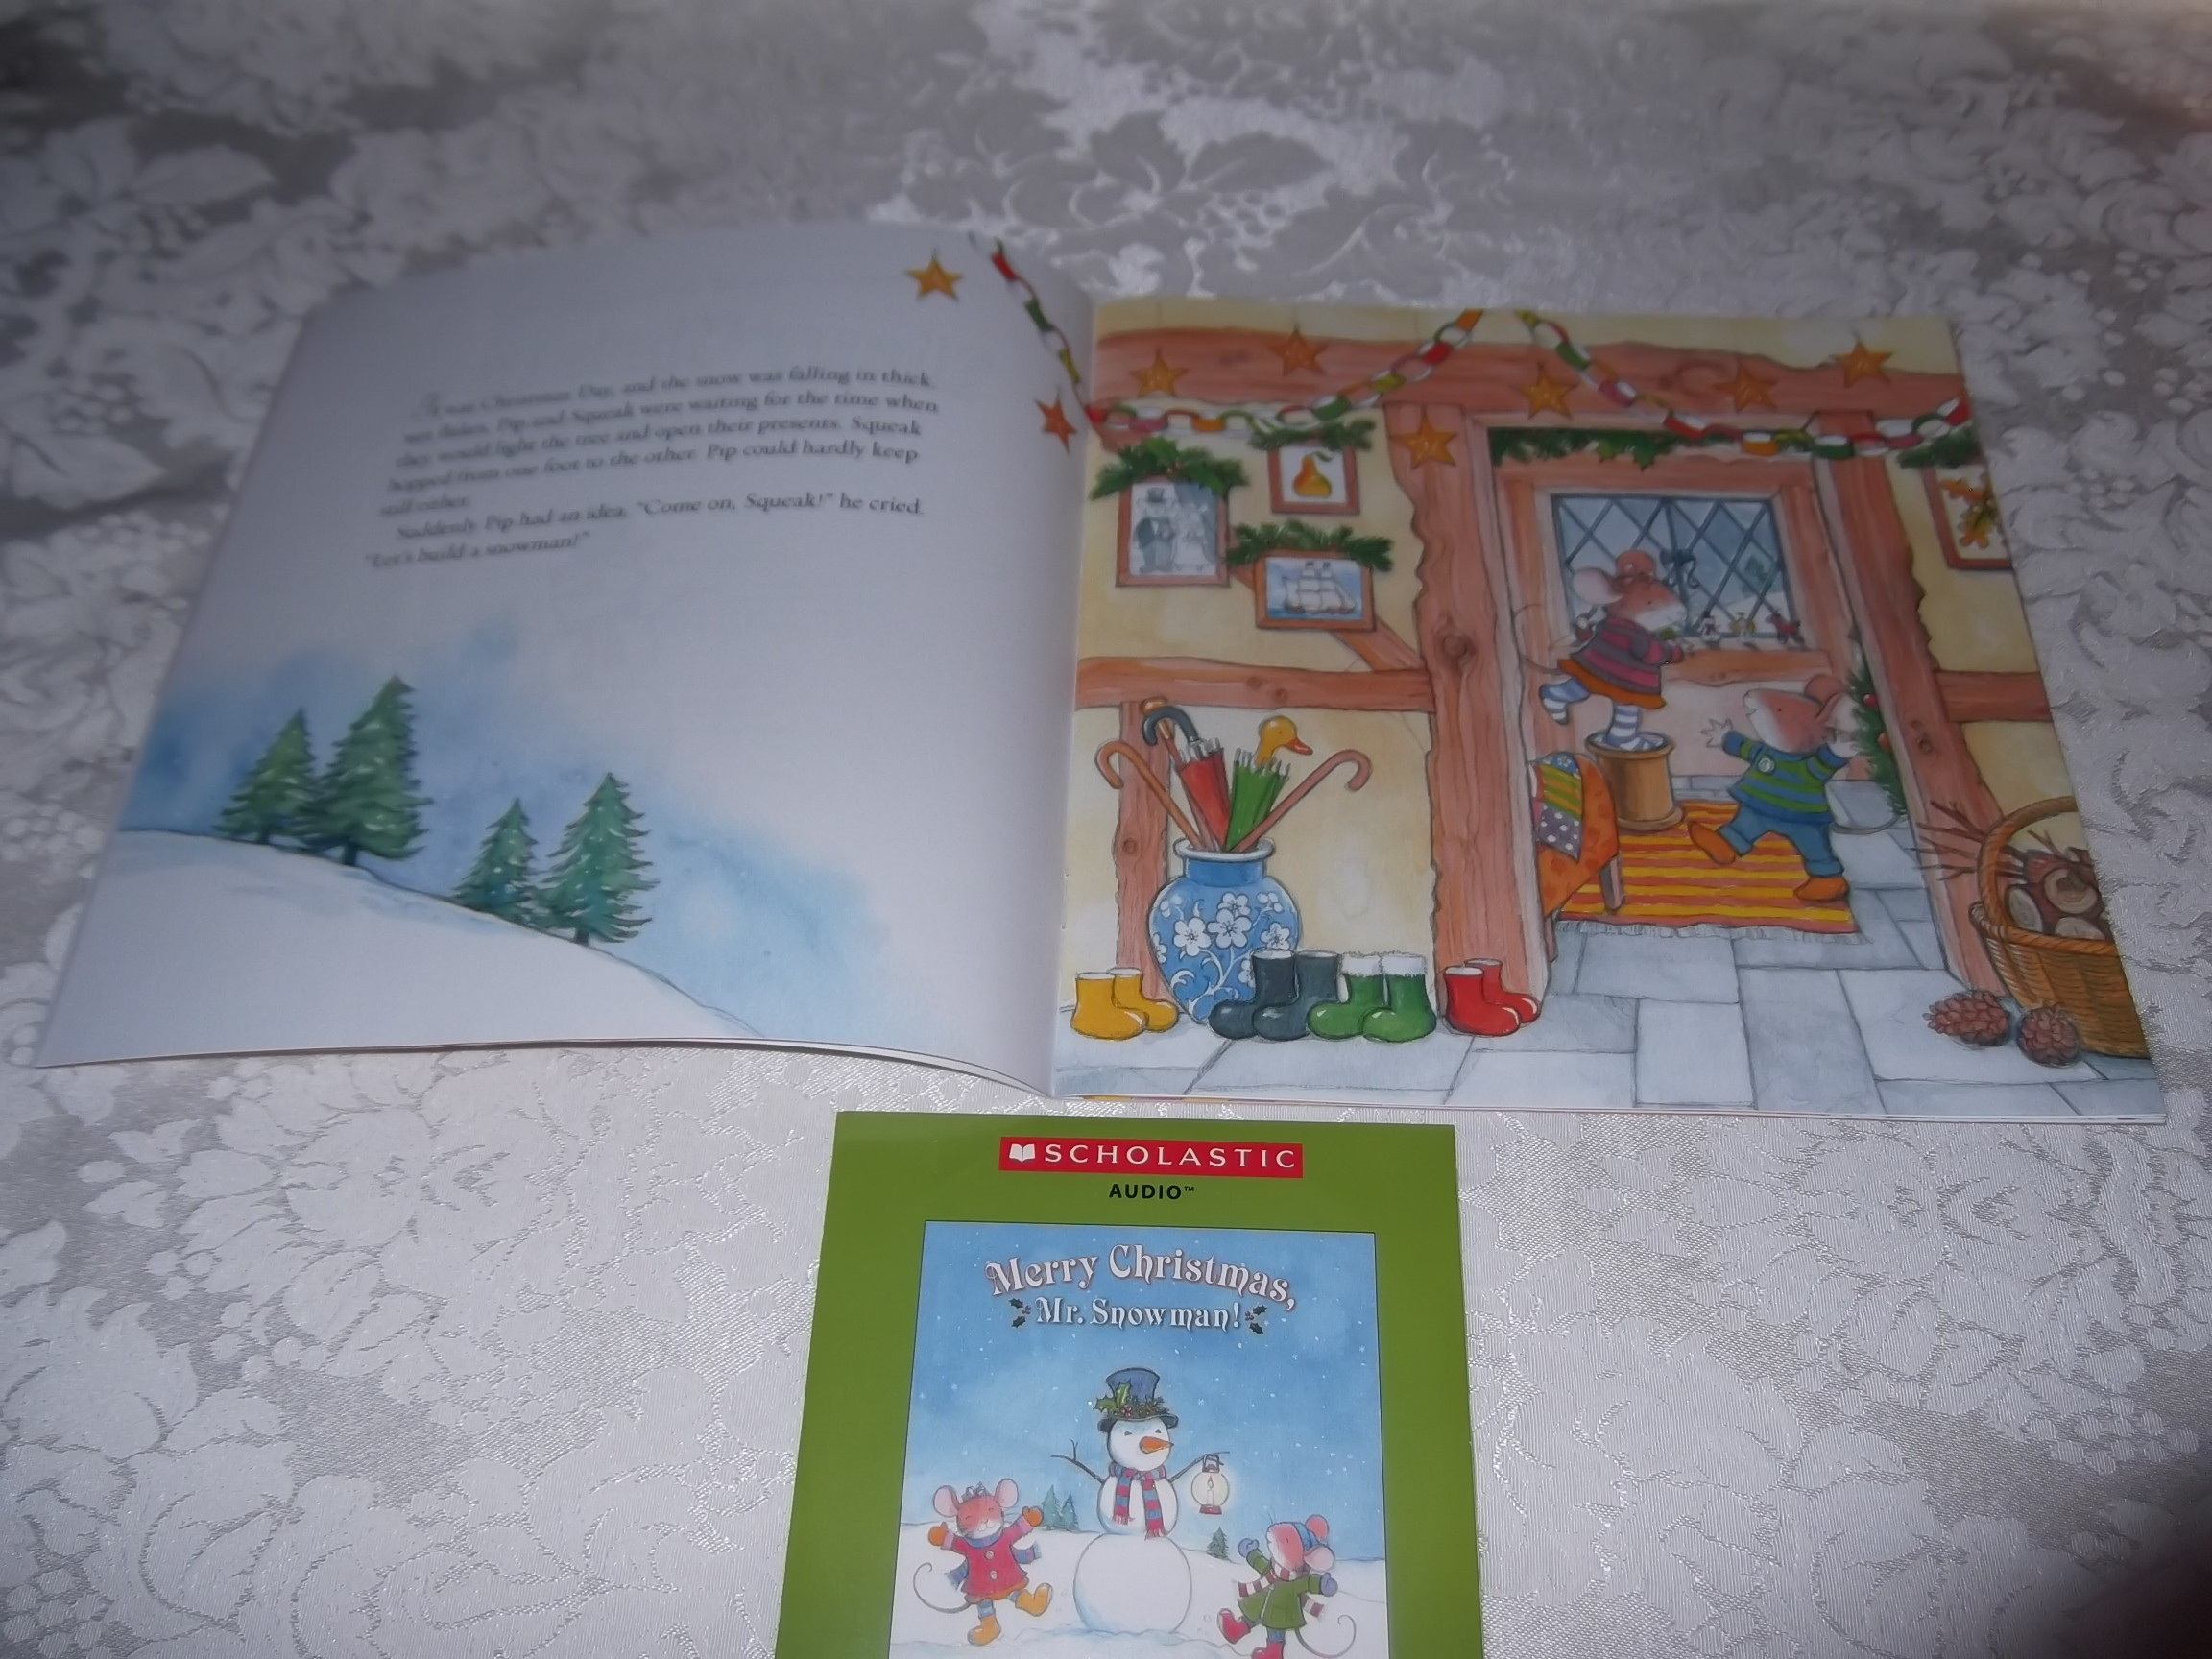 Image 1 of Merry Christmas, Mr. Snowman! Wolfram Hanel Audio CD and SC Brand New